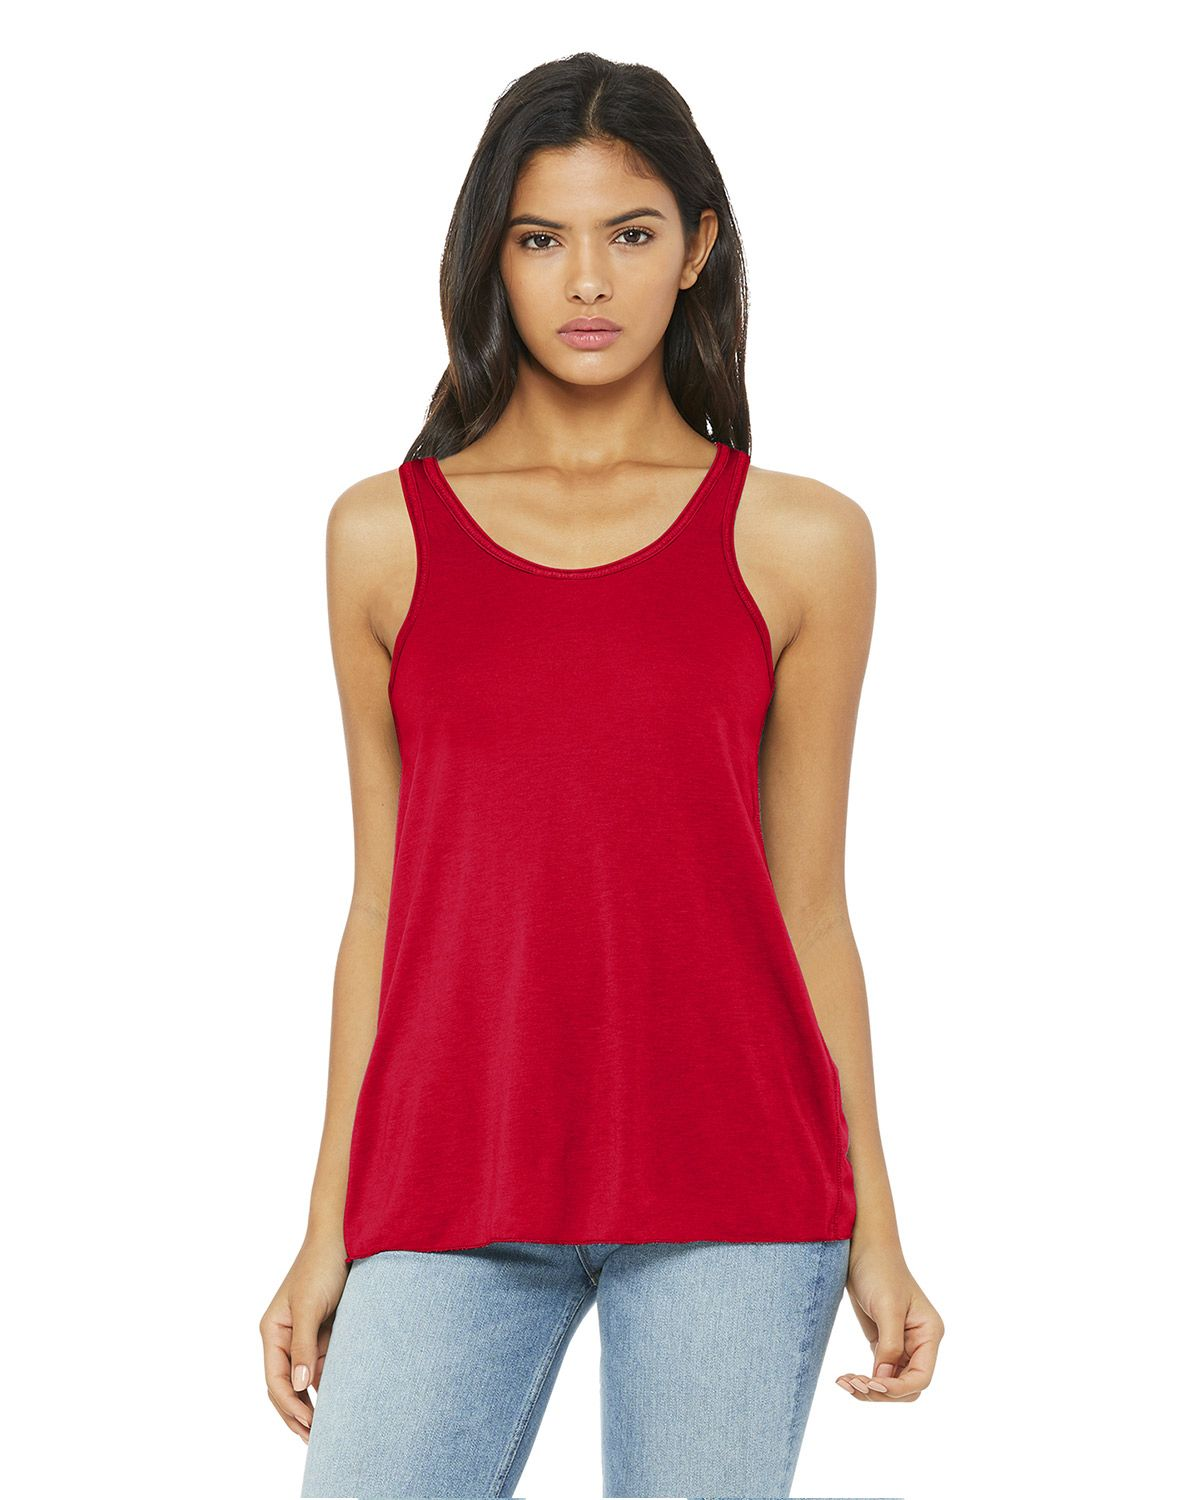 Bella + Canvas 8800 Women's Flowy Racerback Tank - Red - XS from Bella + Canvas